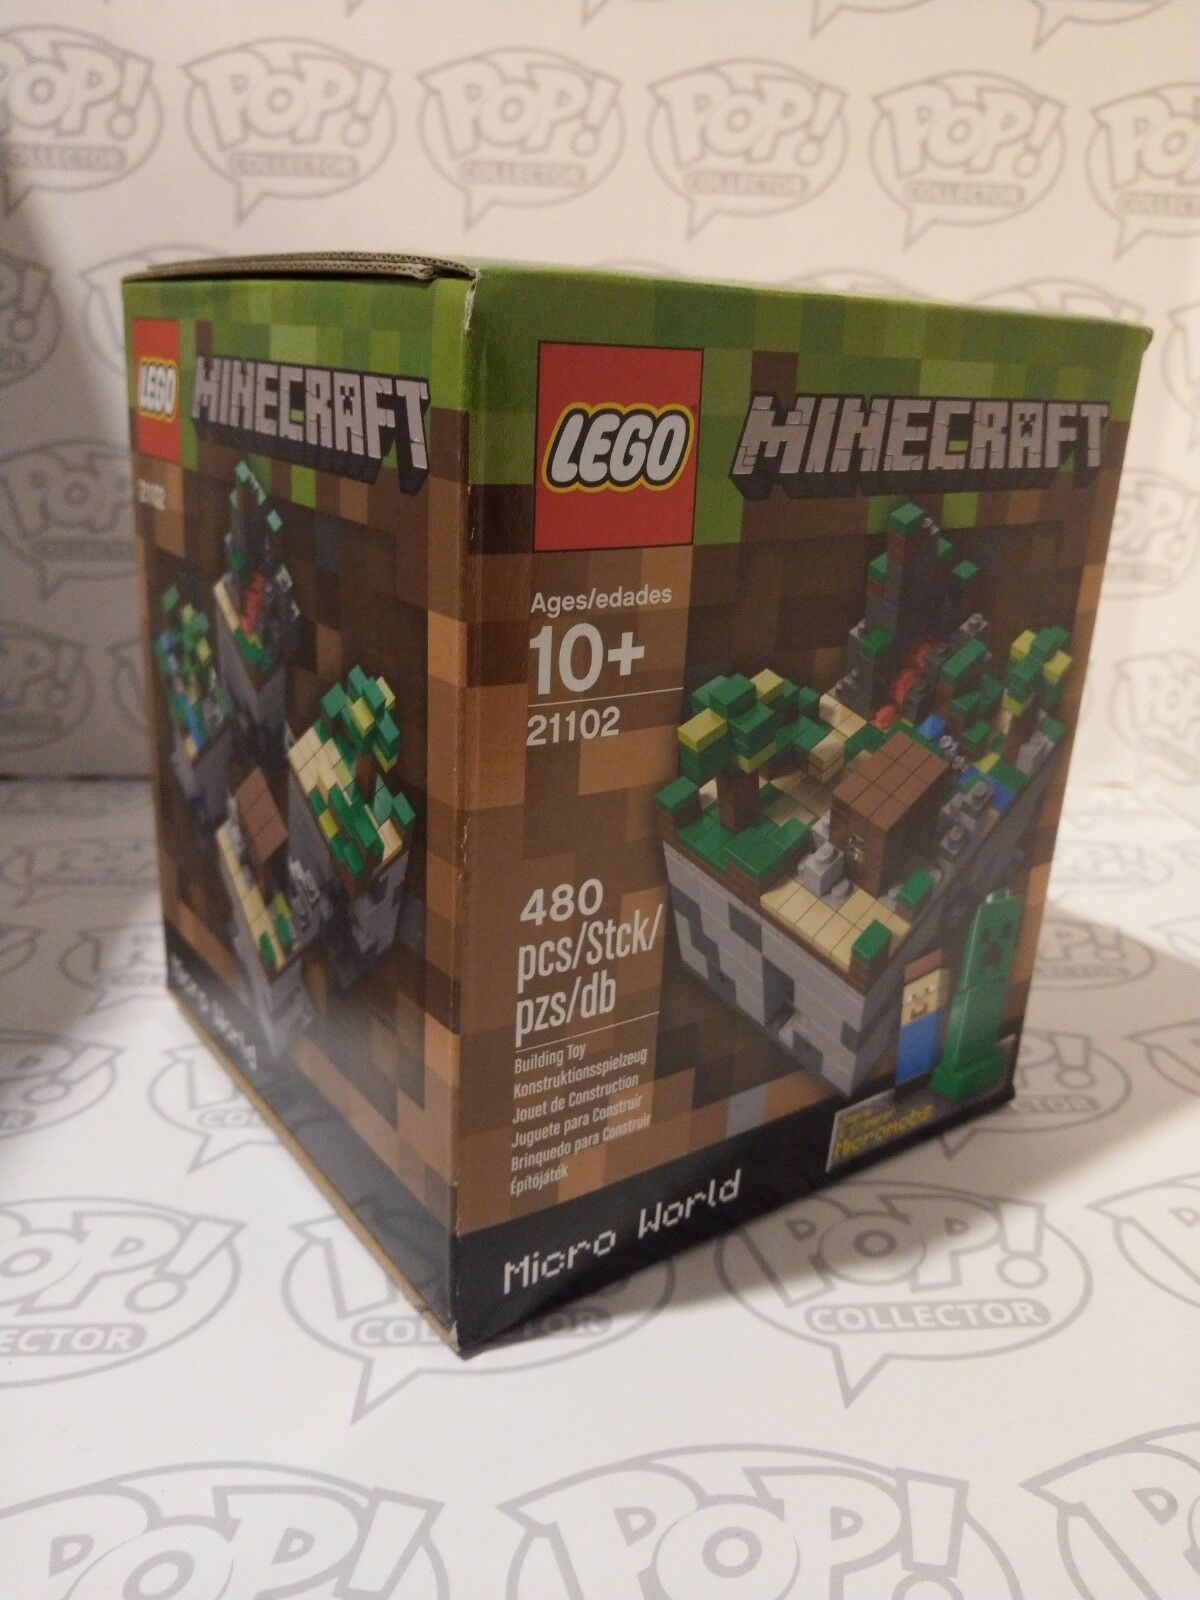 Lego 21102   CUUSOO Micro World MineCraft The Forest   Retired   Sealed